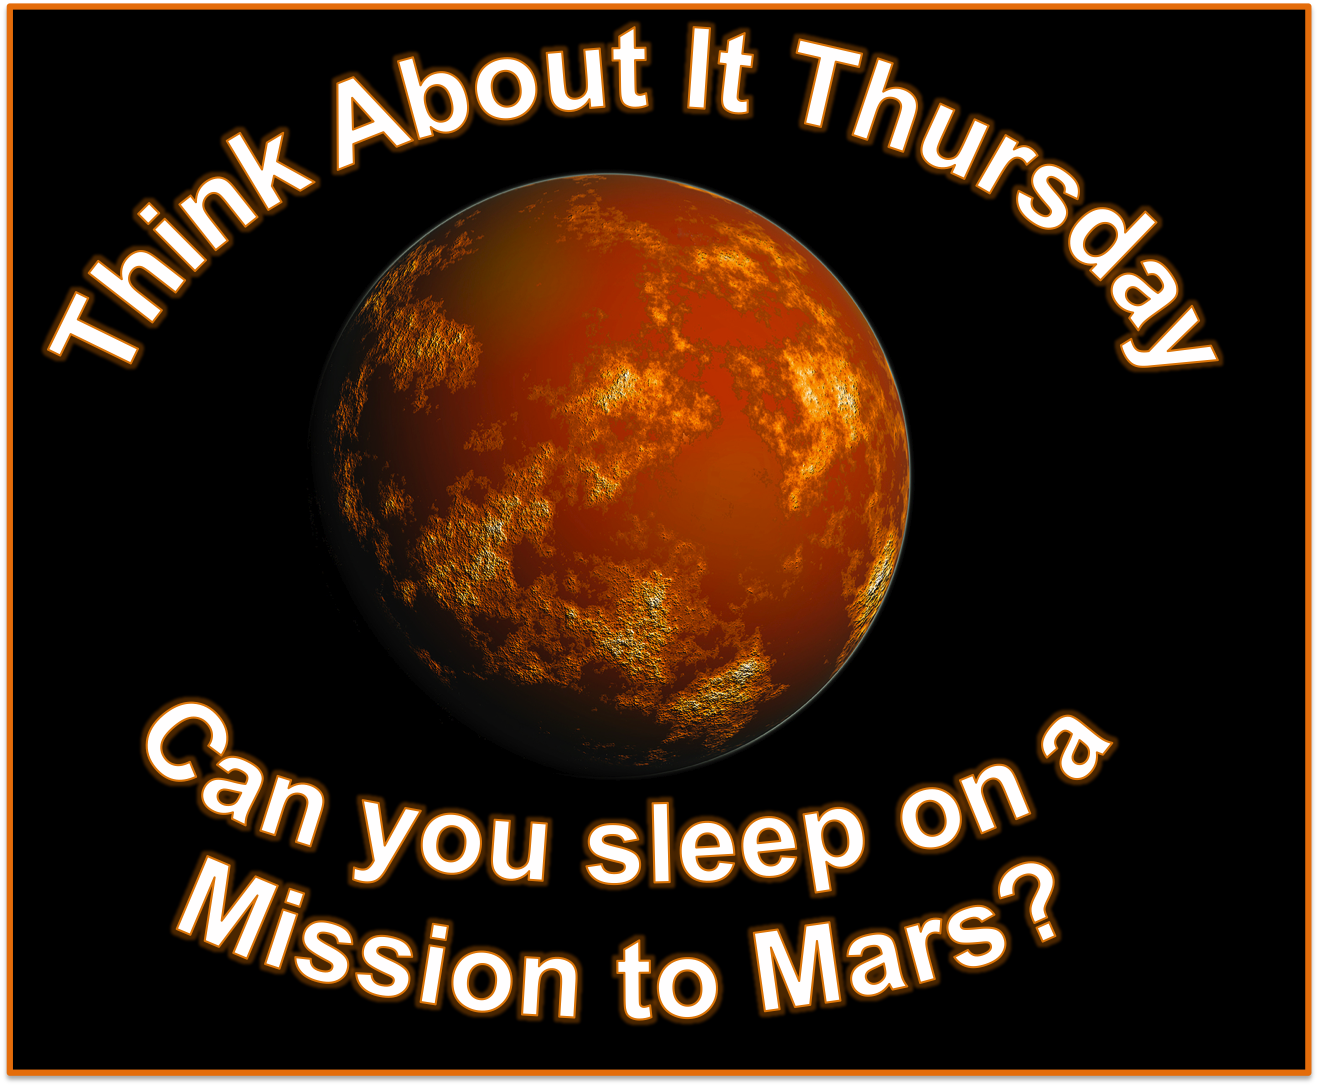 Russia Mission to Mars - Pics about space